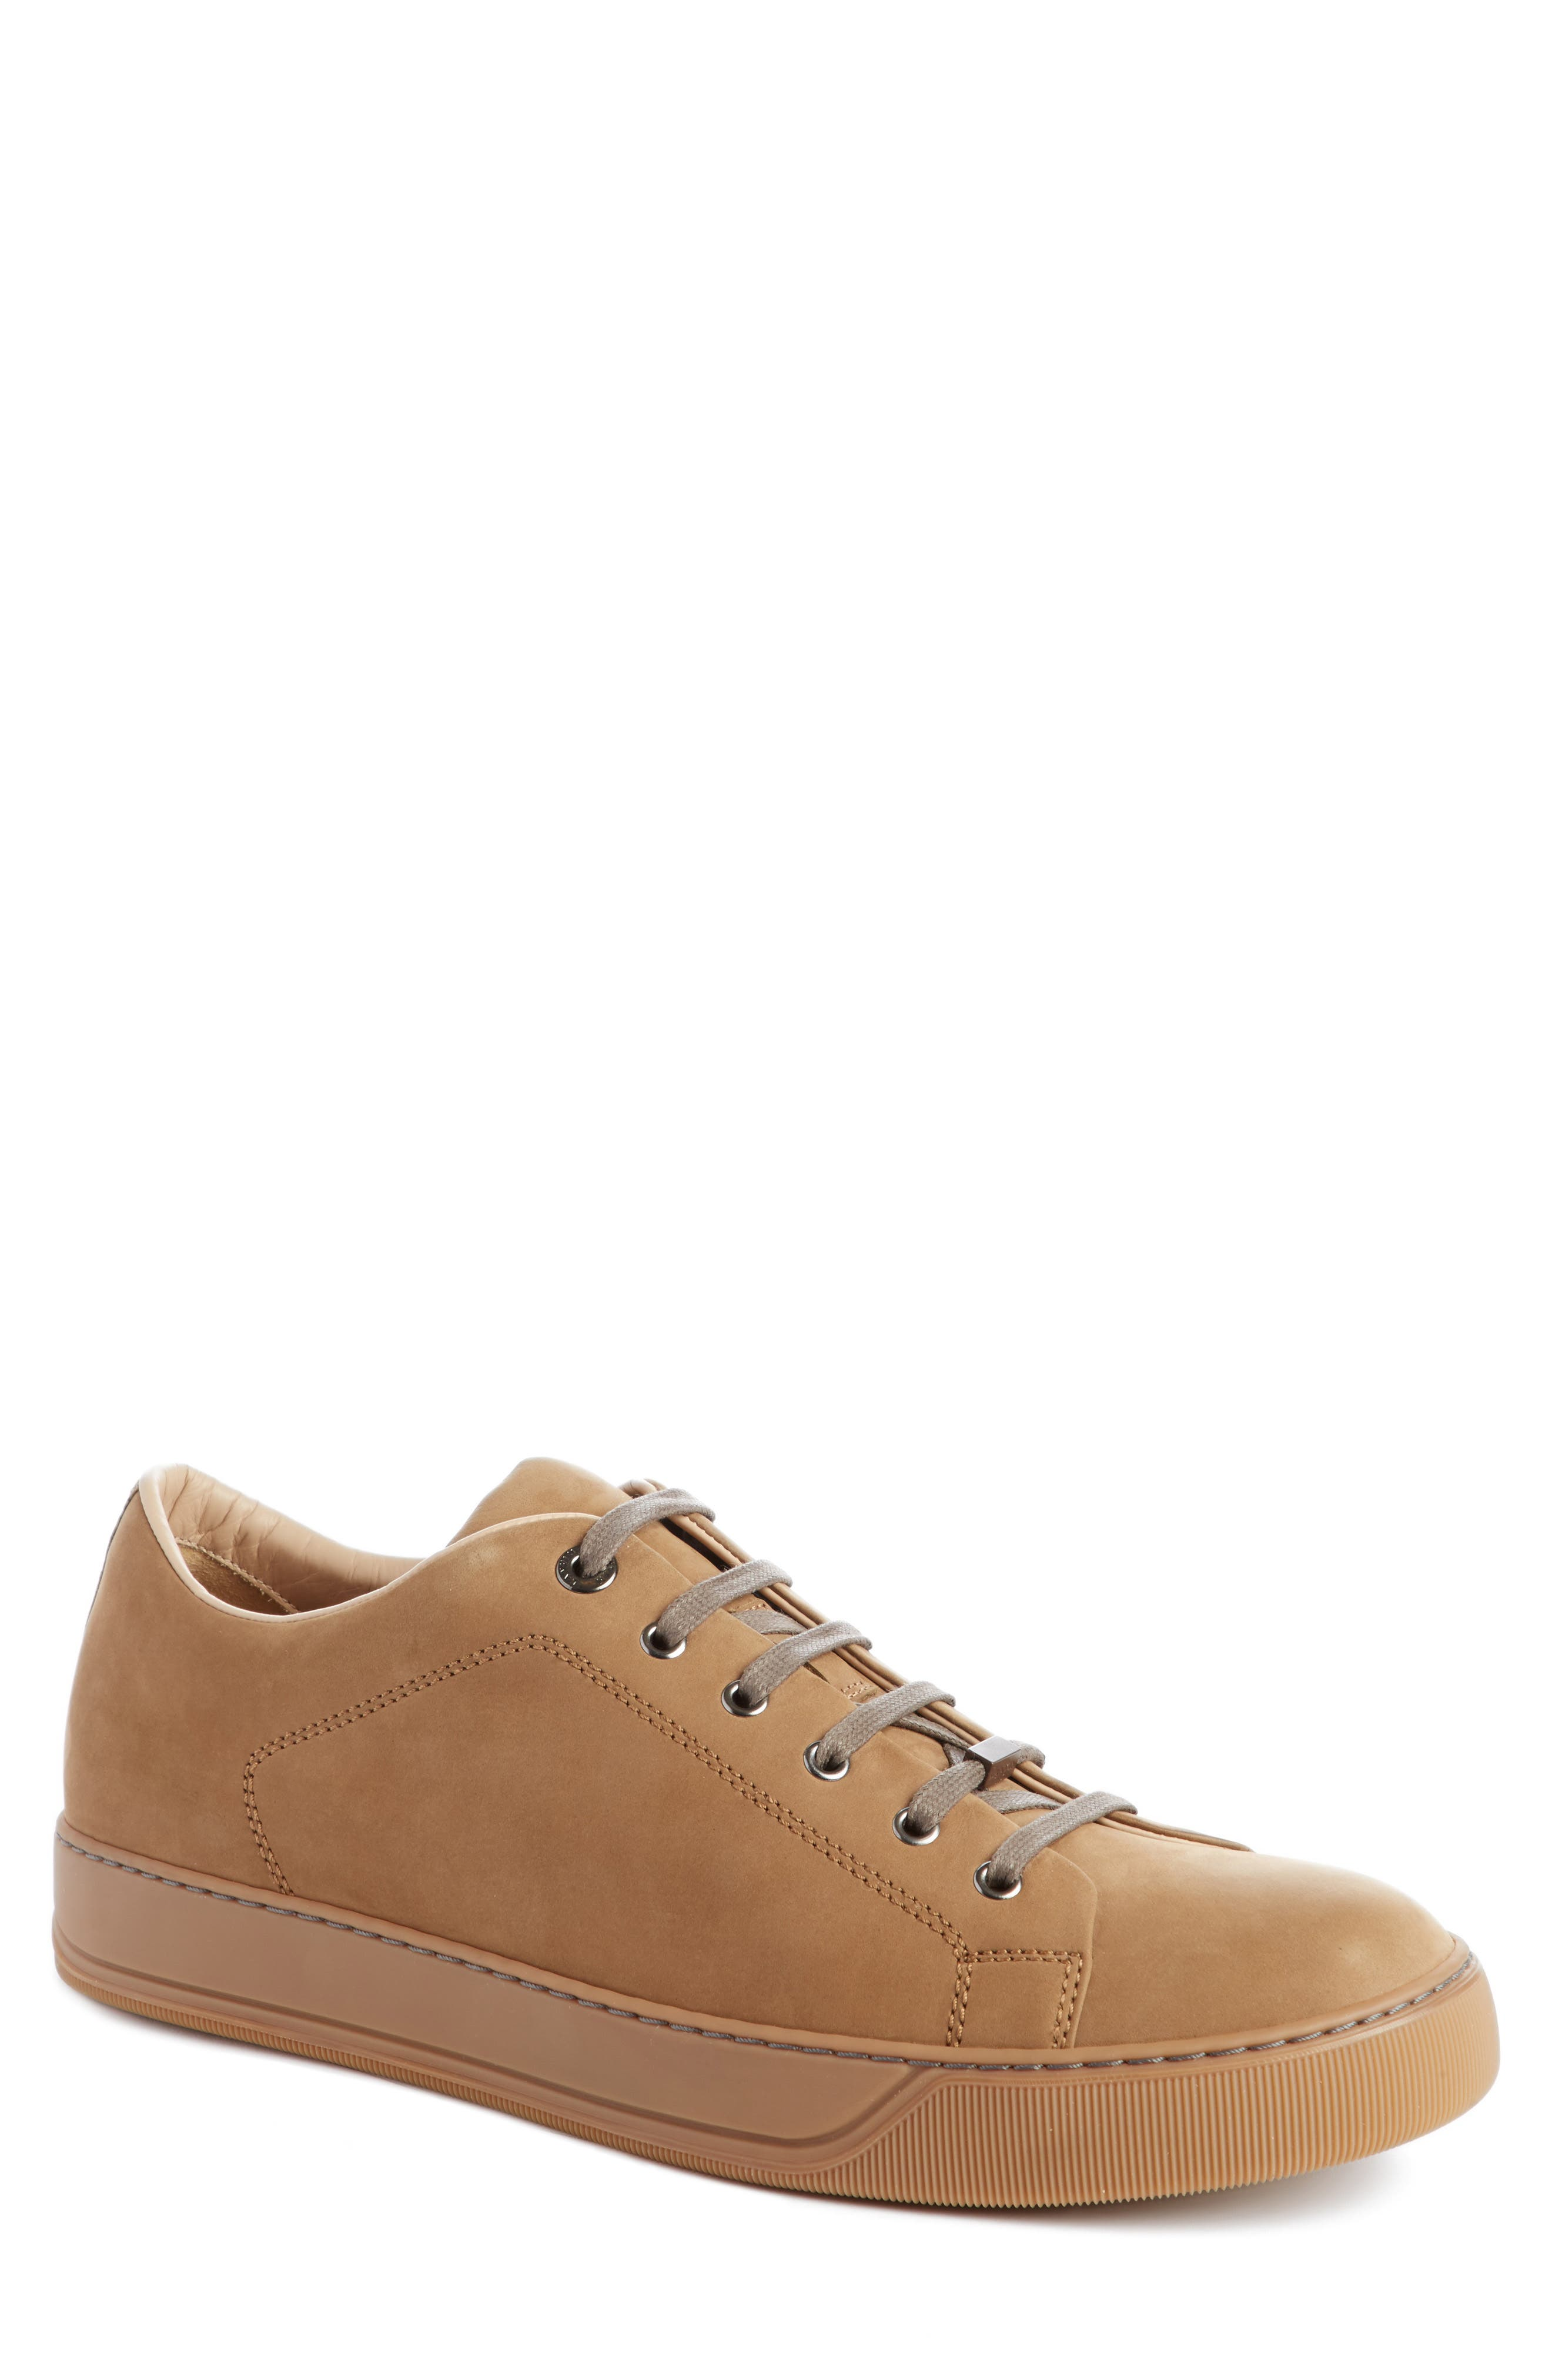 Low Top Cap Toe Sneaker,                             Main thumbnail 1, color,                             Havana Suede